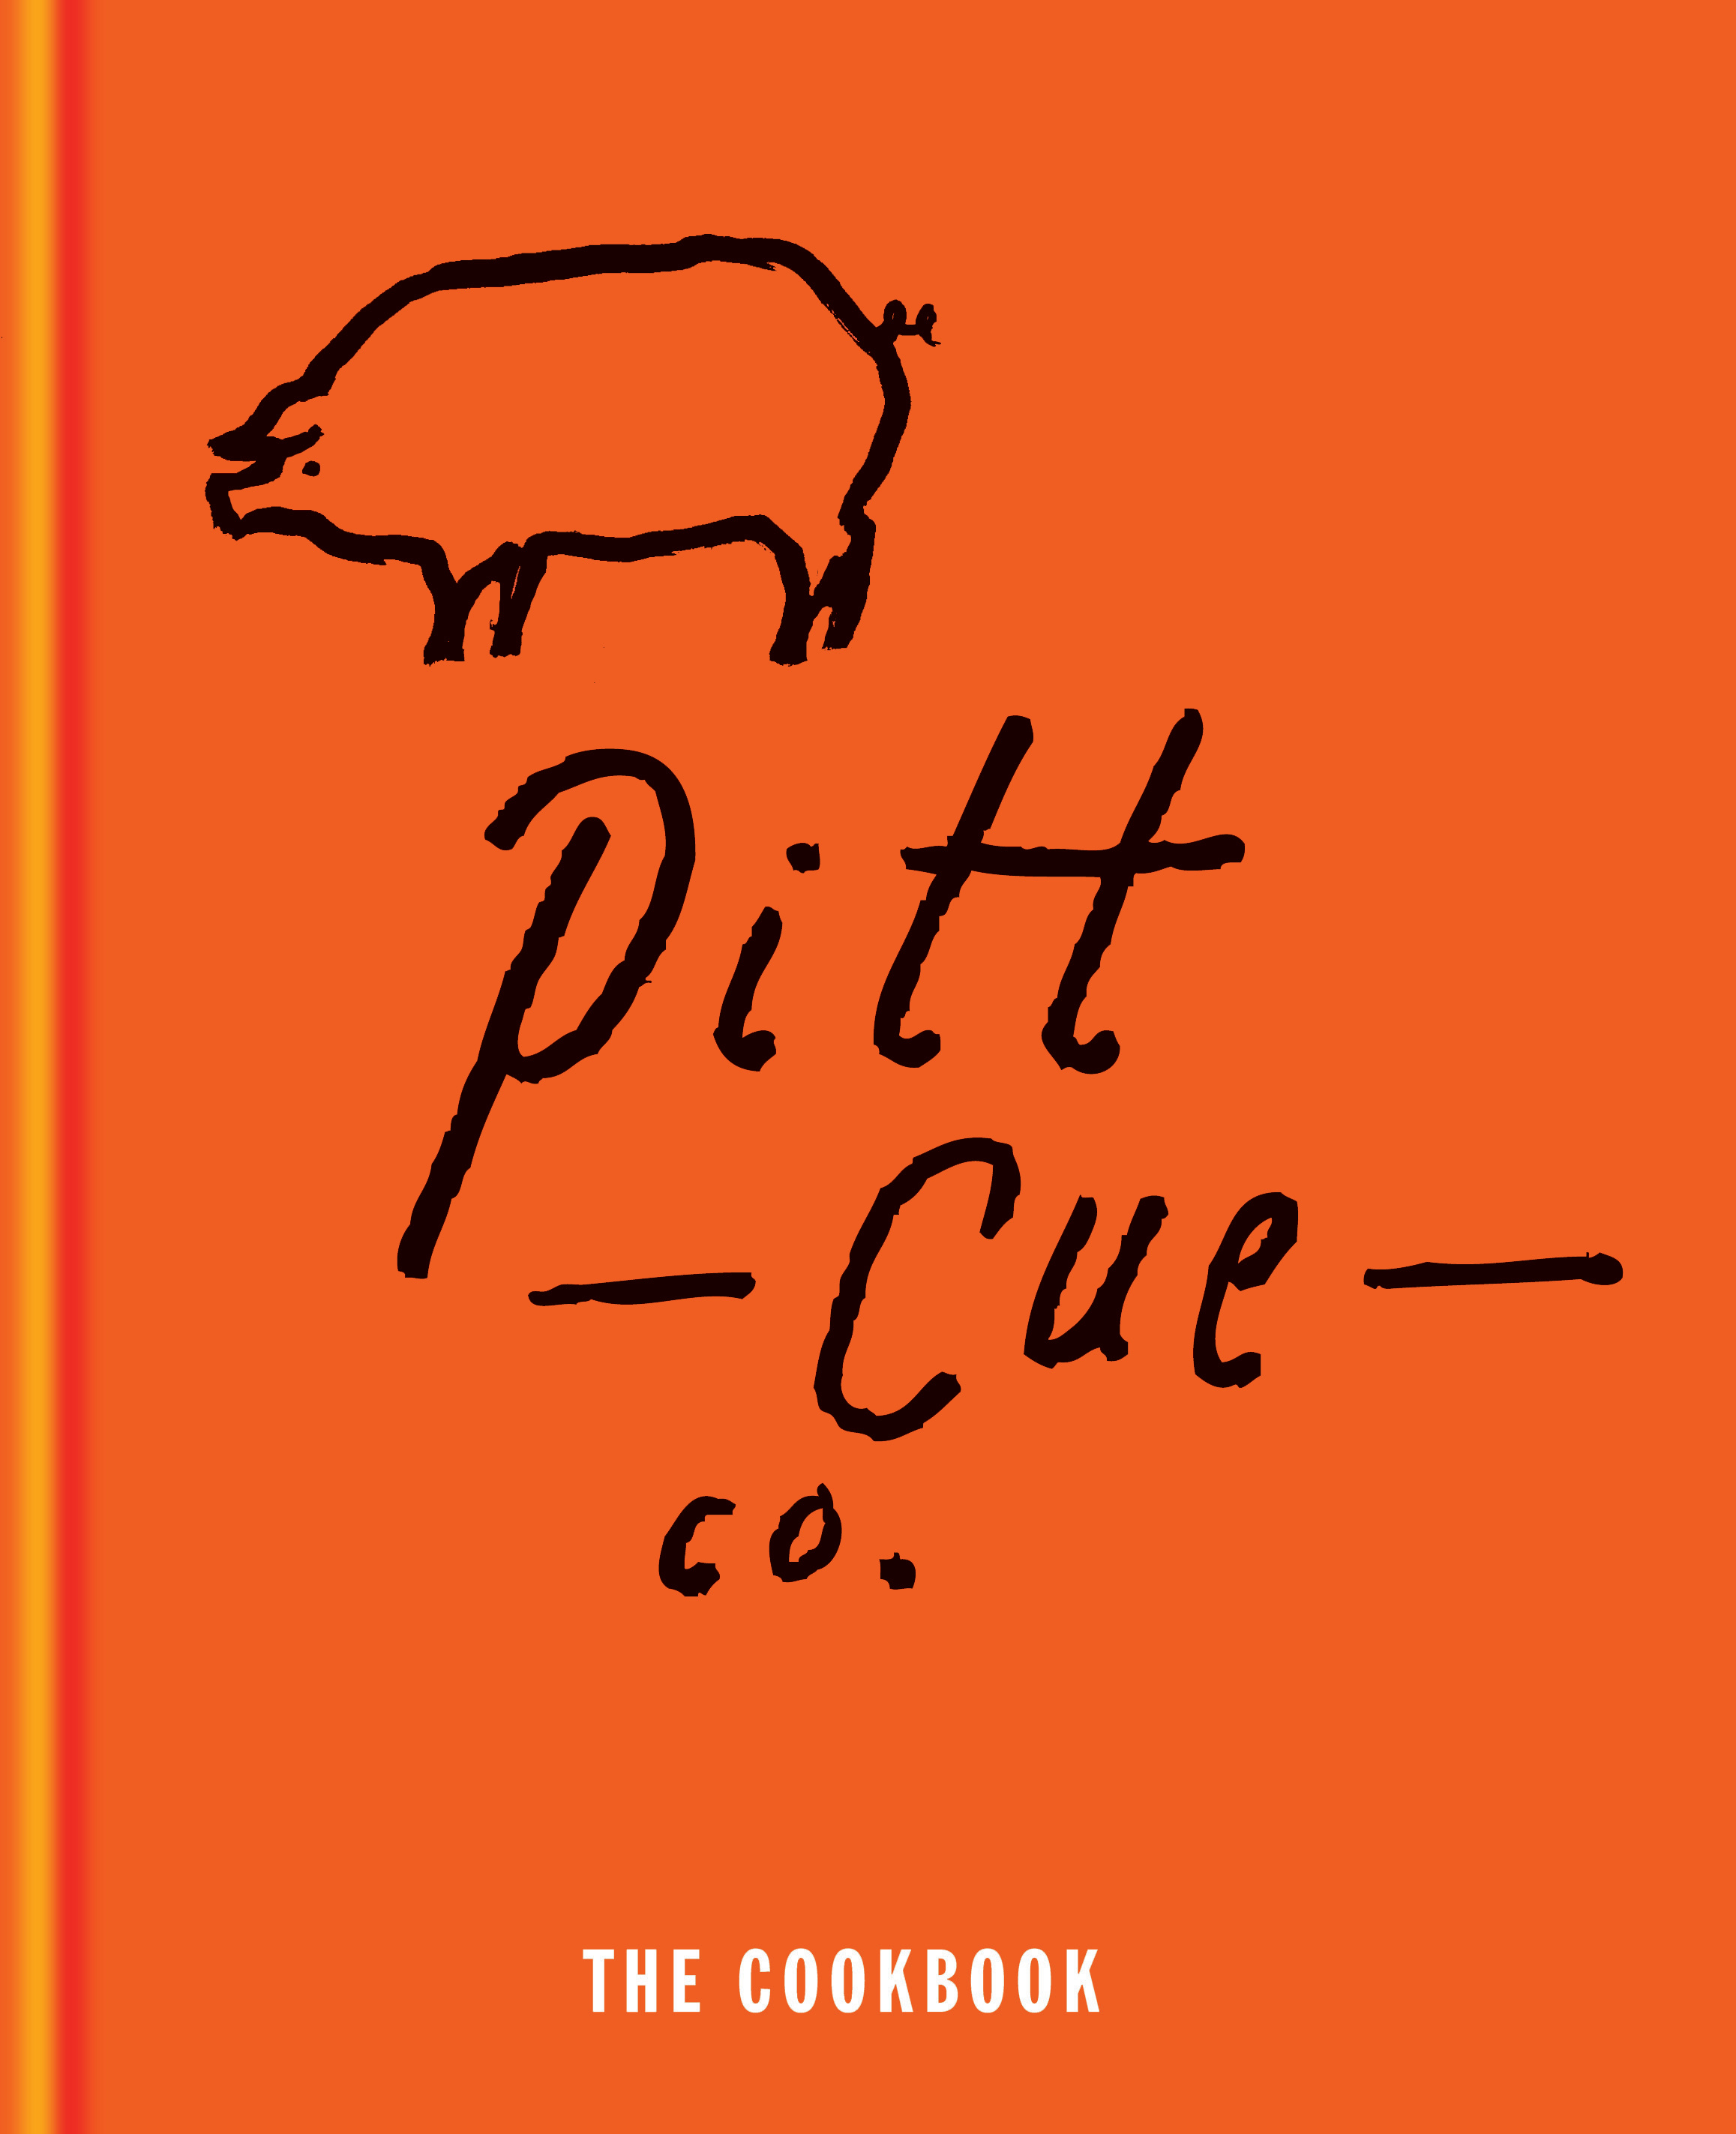 Pitt Cue Co. the Cookbook by Tom Adams, ISBN: 9781845337568